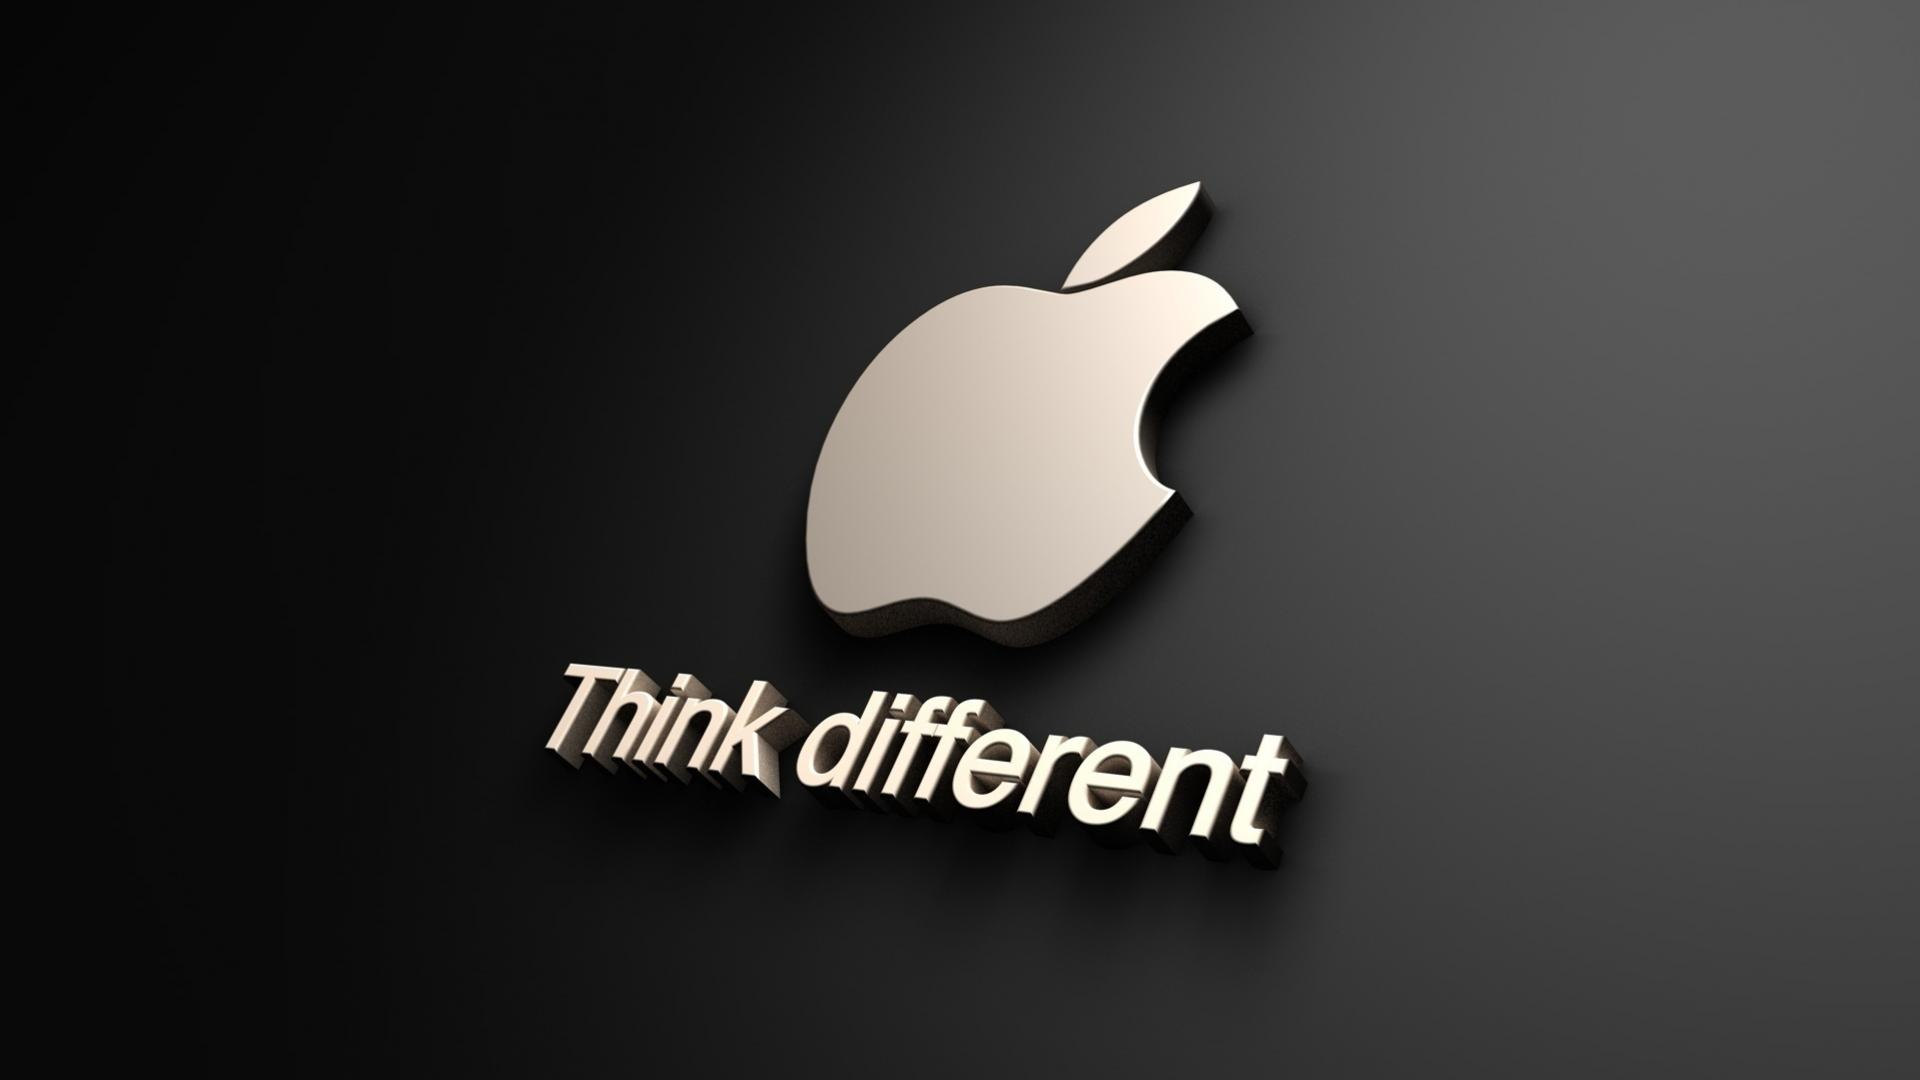 Apple Project - Professional Native Russian Voice Talent